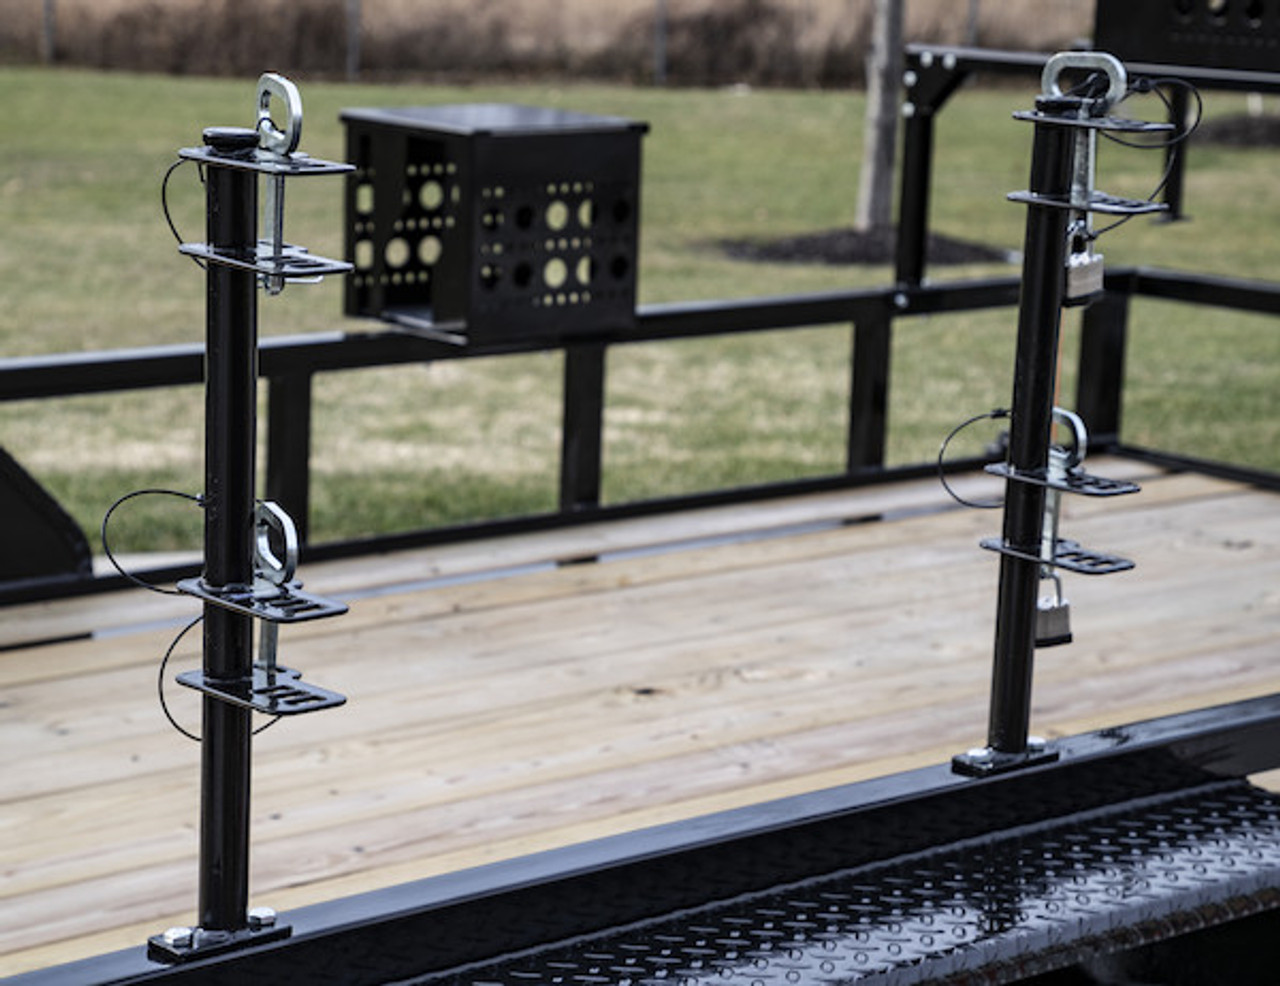 Buyers LT18 Lockable Trimmer Rack Carrier Holder for Up to 2 Trimmers for Trailers and Trucks Picture # 1